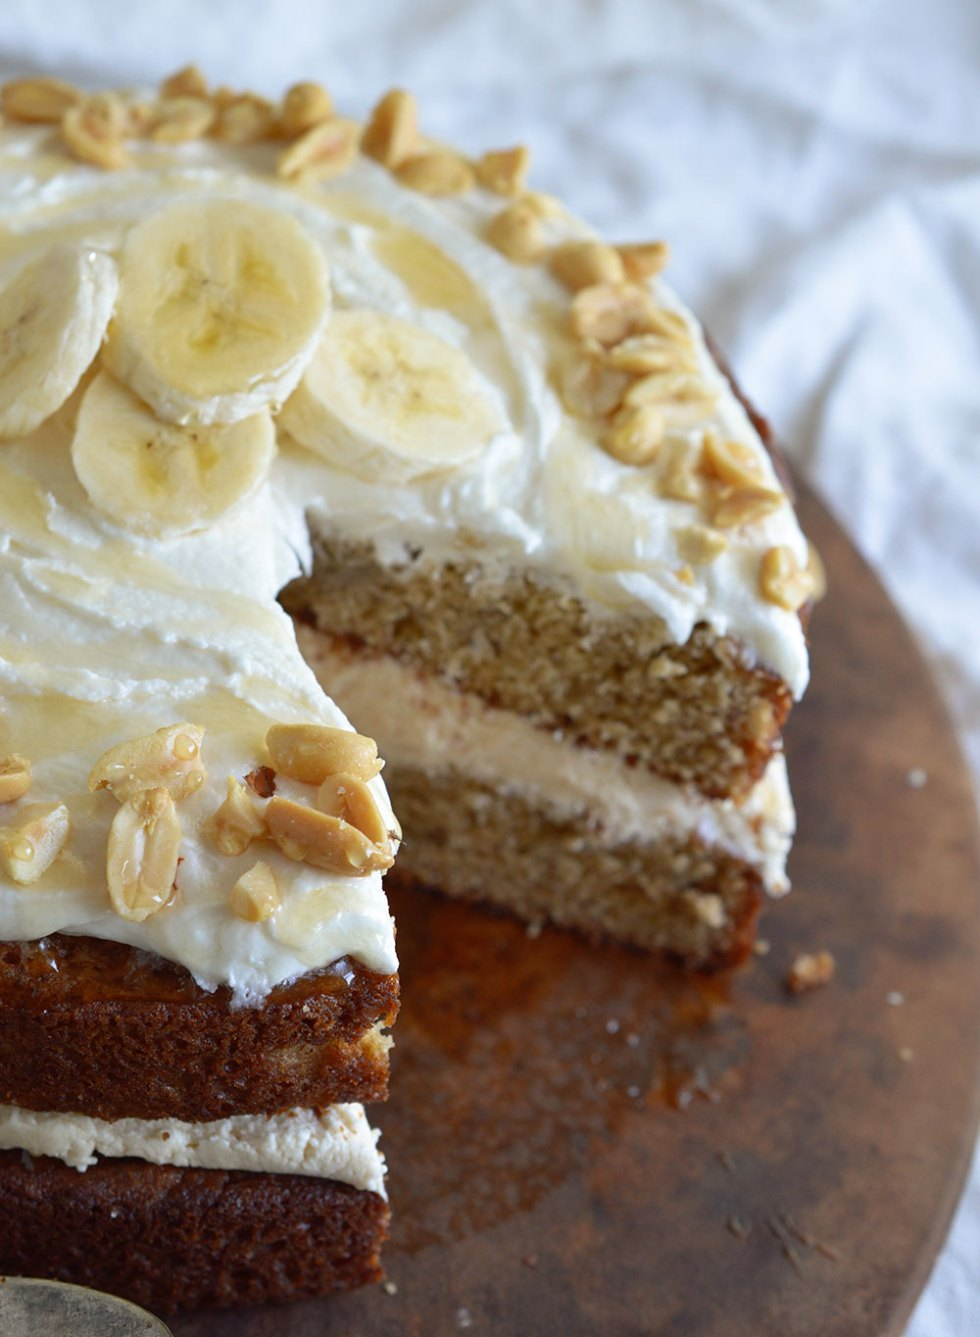 Banana Layer Cake with Peanut Butter and Honey Frosting. This fun and easy naked layer cake will take you back to your childhood! The perfect blend of peanut butter, honey and banana in one impressive dessert recipe!